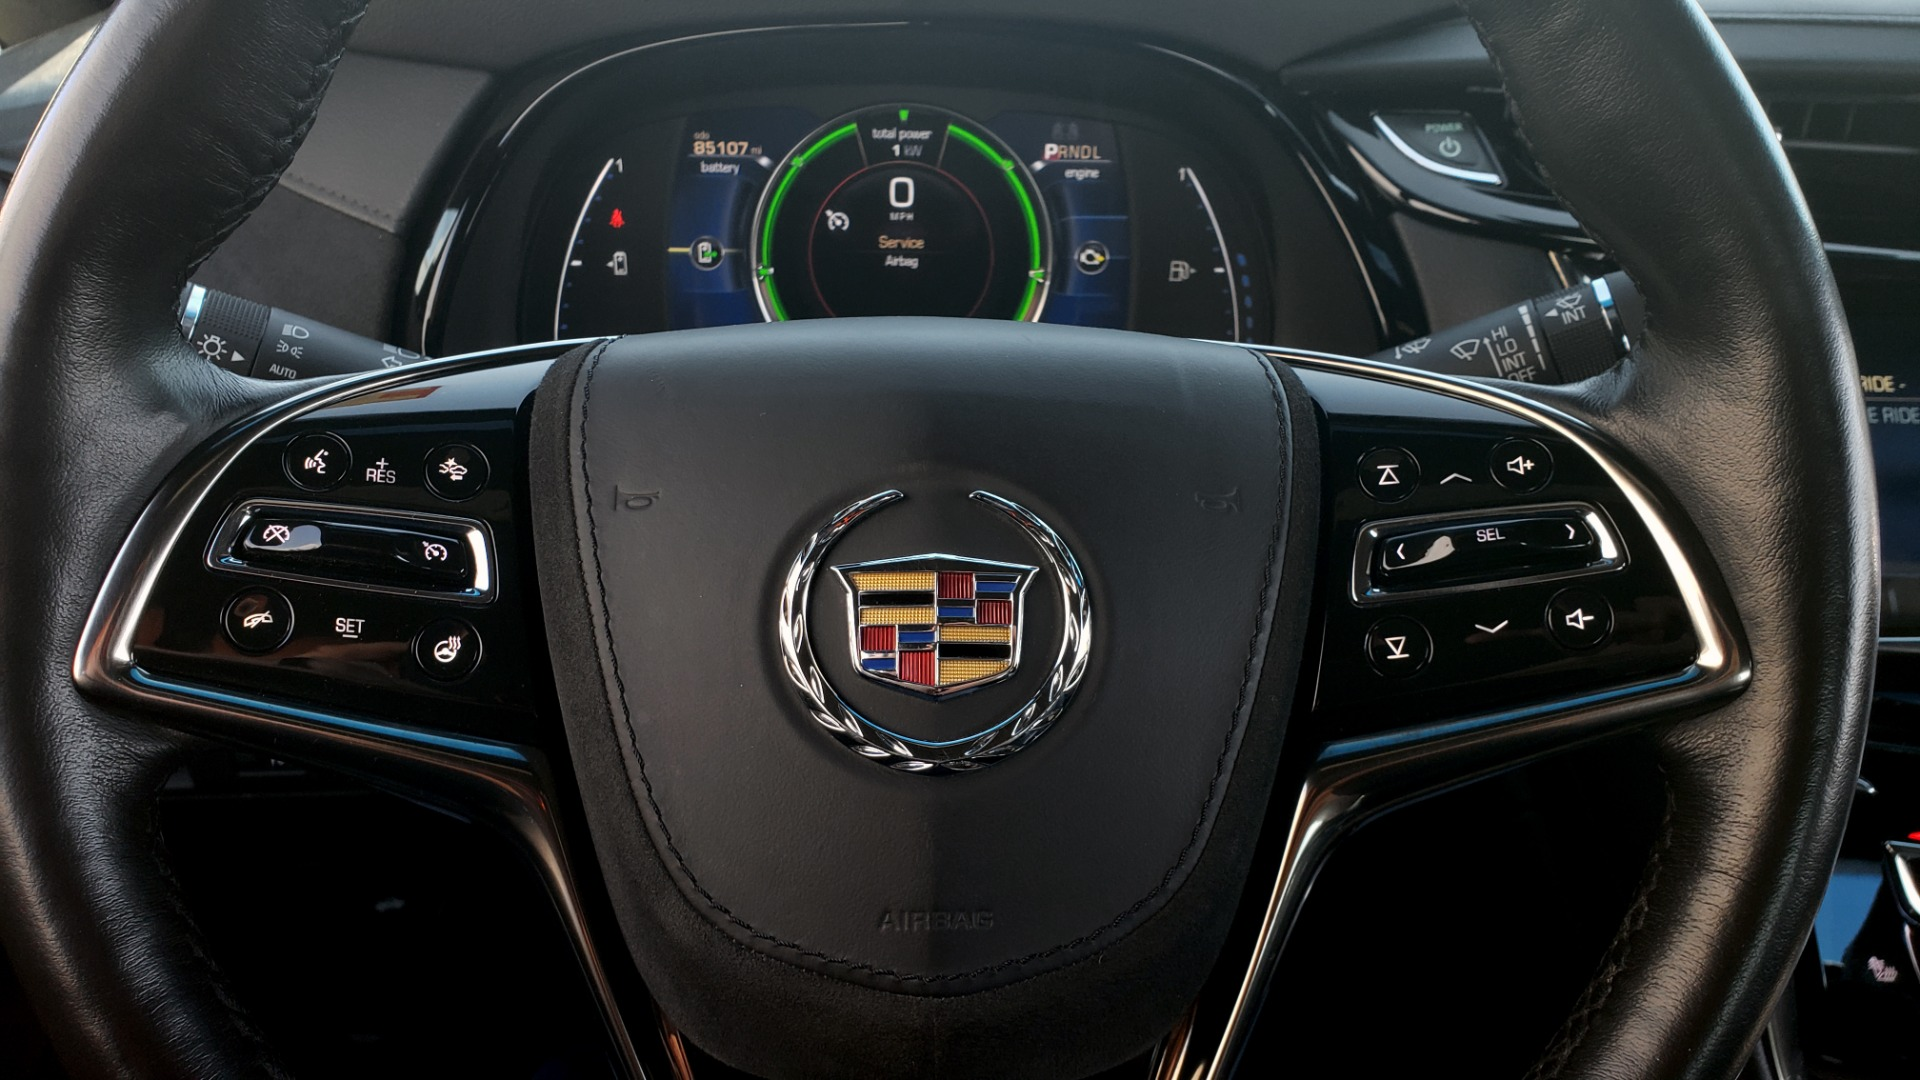 Used 2014 Cadillac ELR 2DR COUPE / HYBRID / NAV / BOSE / HEATED SEATS / REARVIEW for sale $19,995 at Formula Imports in Charlotte NC 28227 39